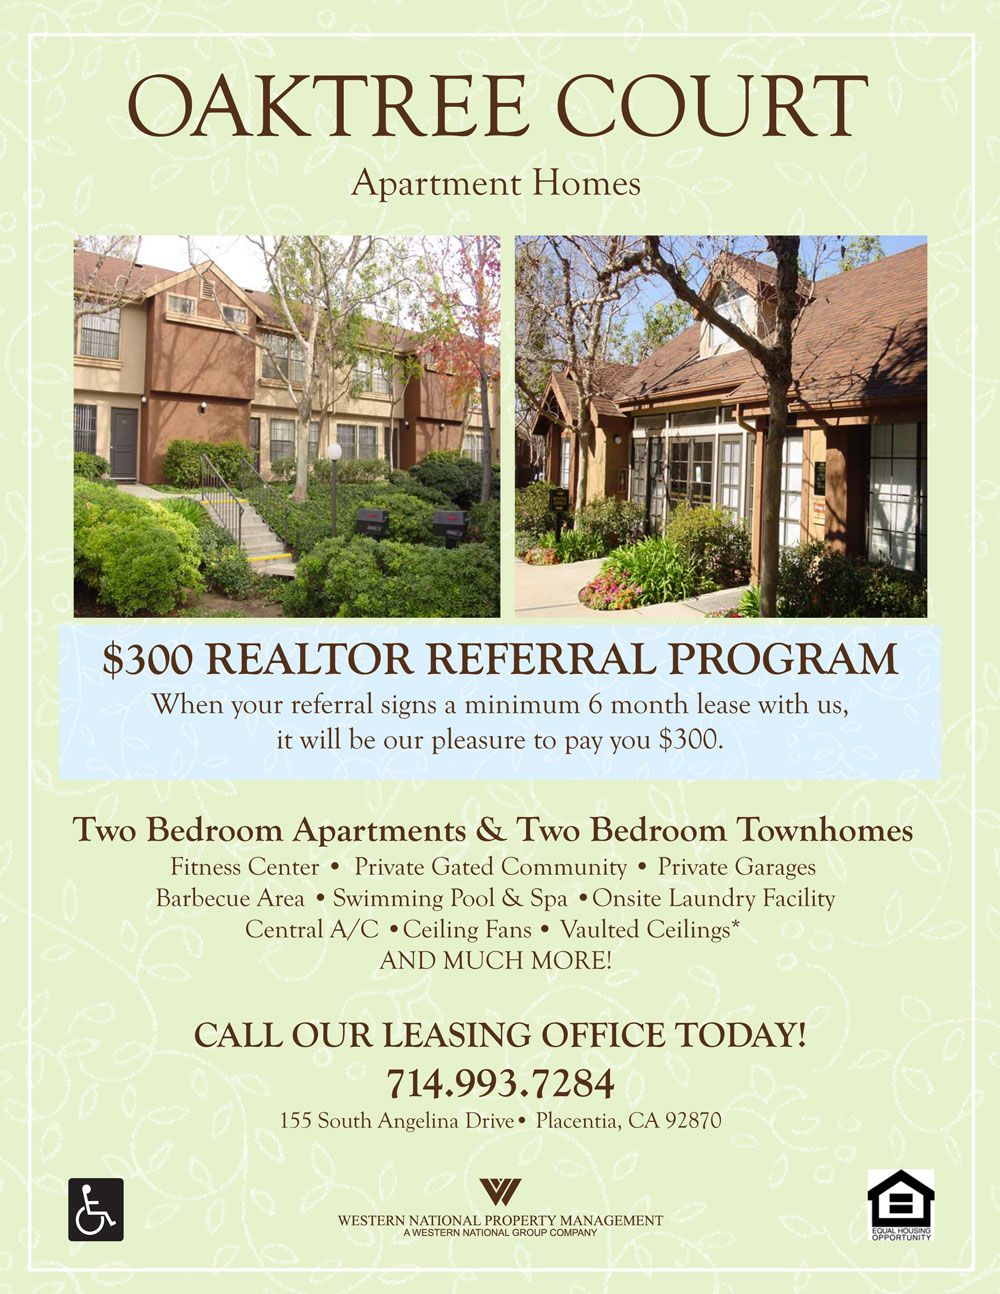 realtor referral program flyer apartment marketing ideas realtor referral program flyer apartment marketing ideas flyers